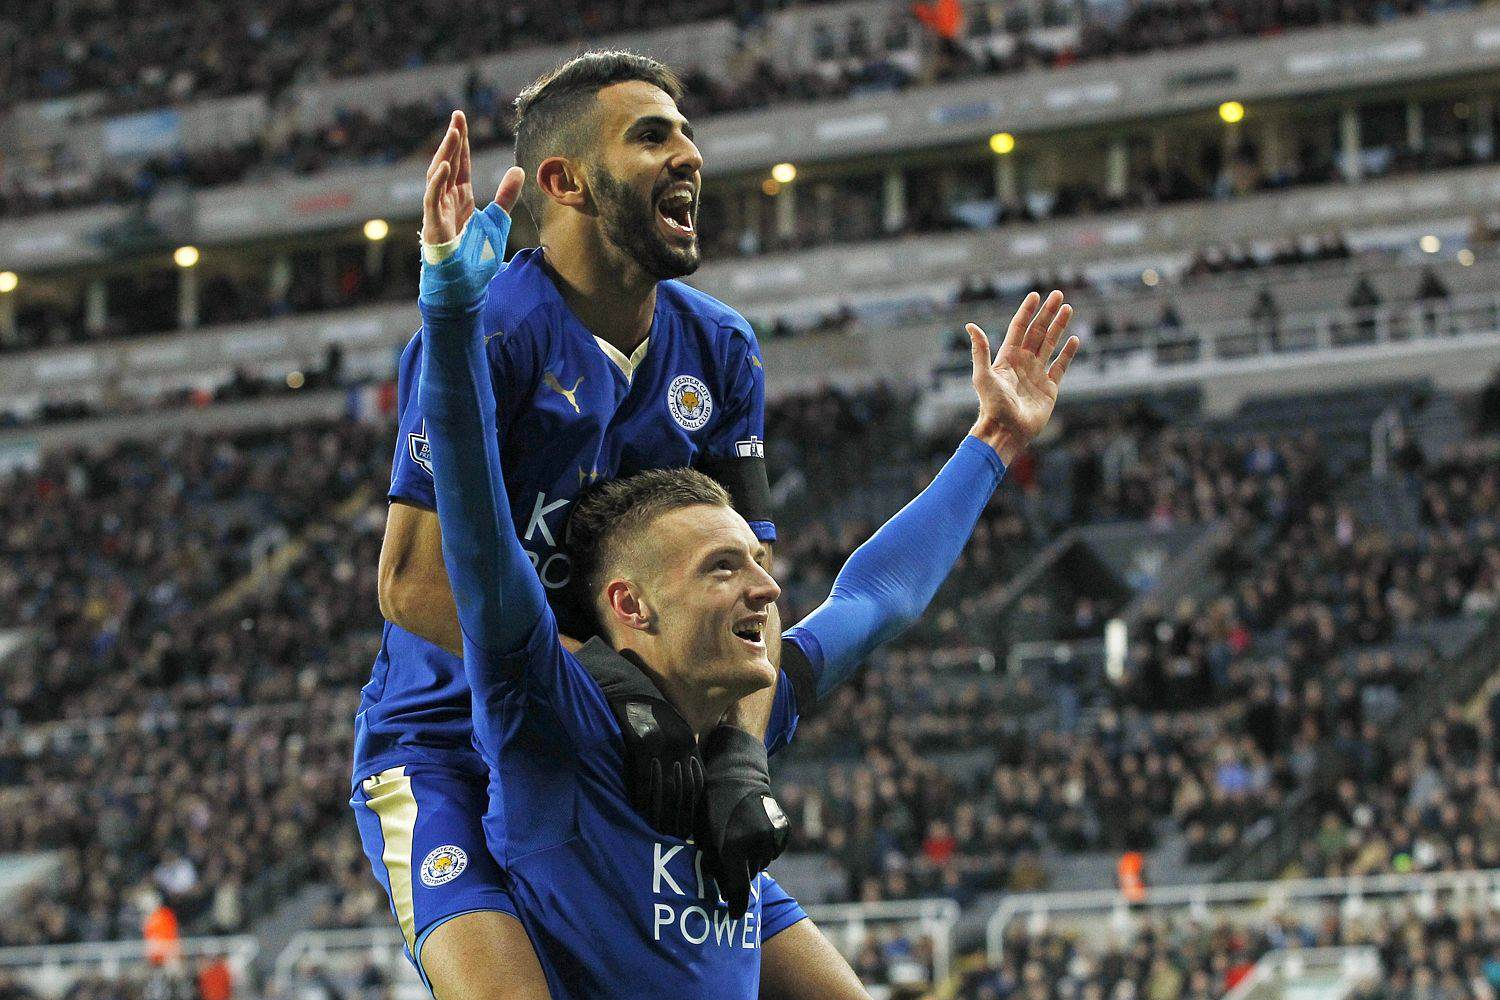 Vardy Celebration 1 Five Reasons Leicester City CAN Win The Premier League